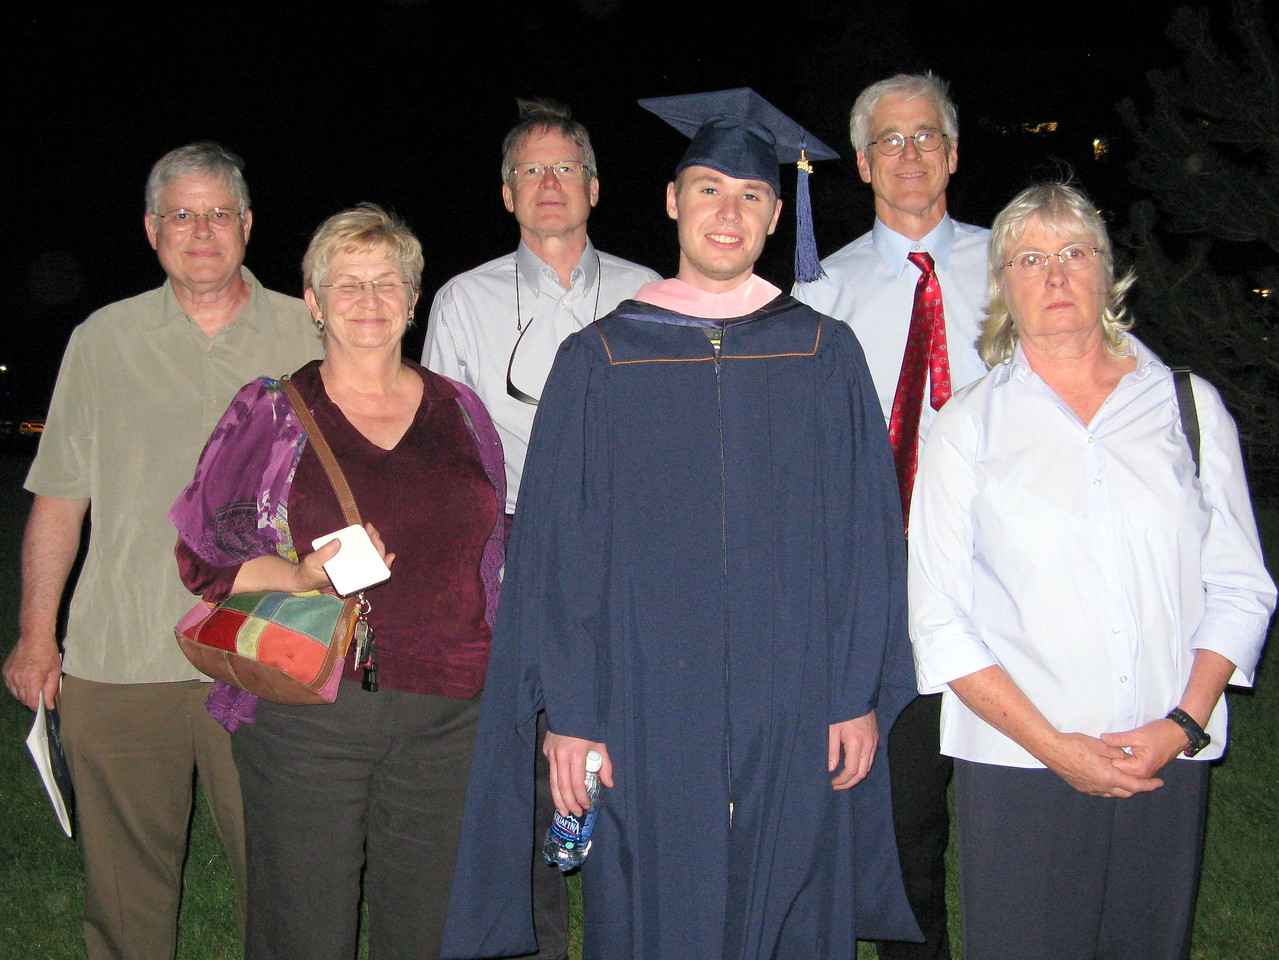 Kevin and his aunts and uncles ...  Wendell, Kathi, Richard, Kevin, Glenn and Connie.